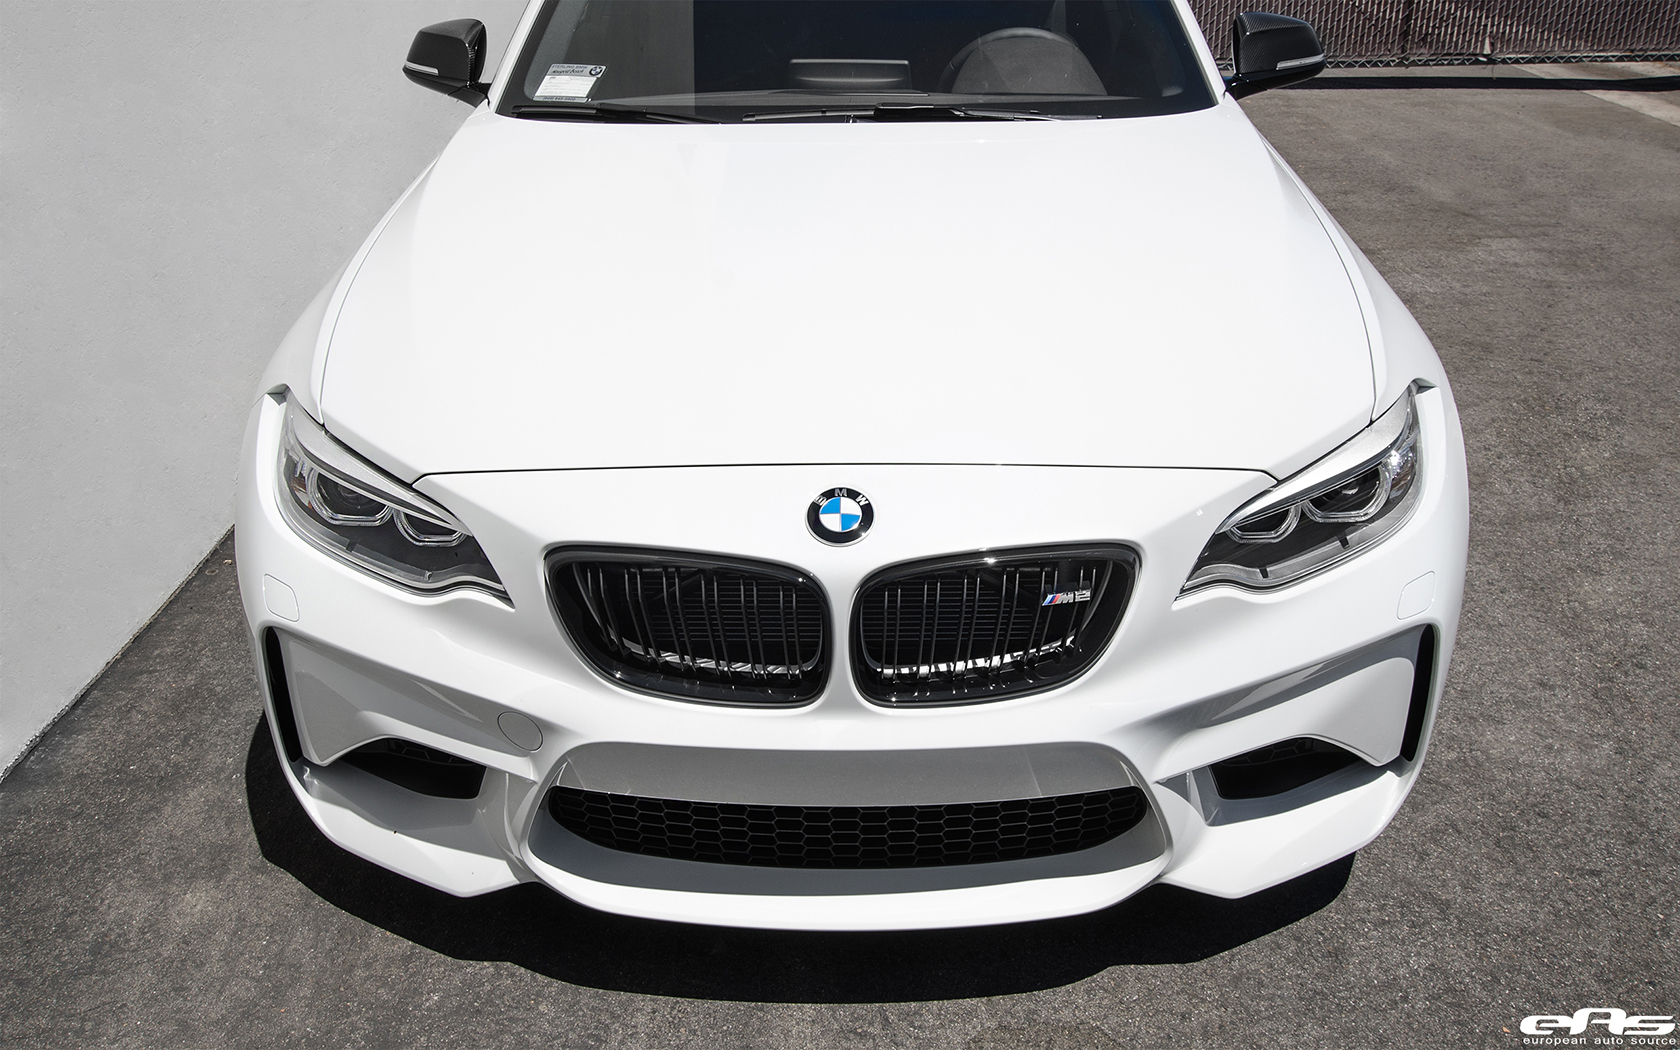 2016 Alpine White F87 M2 Gets An Ohlins Road And Track